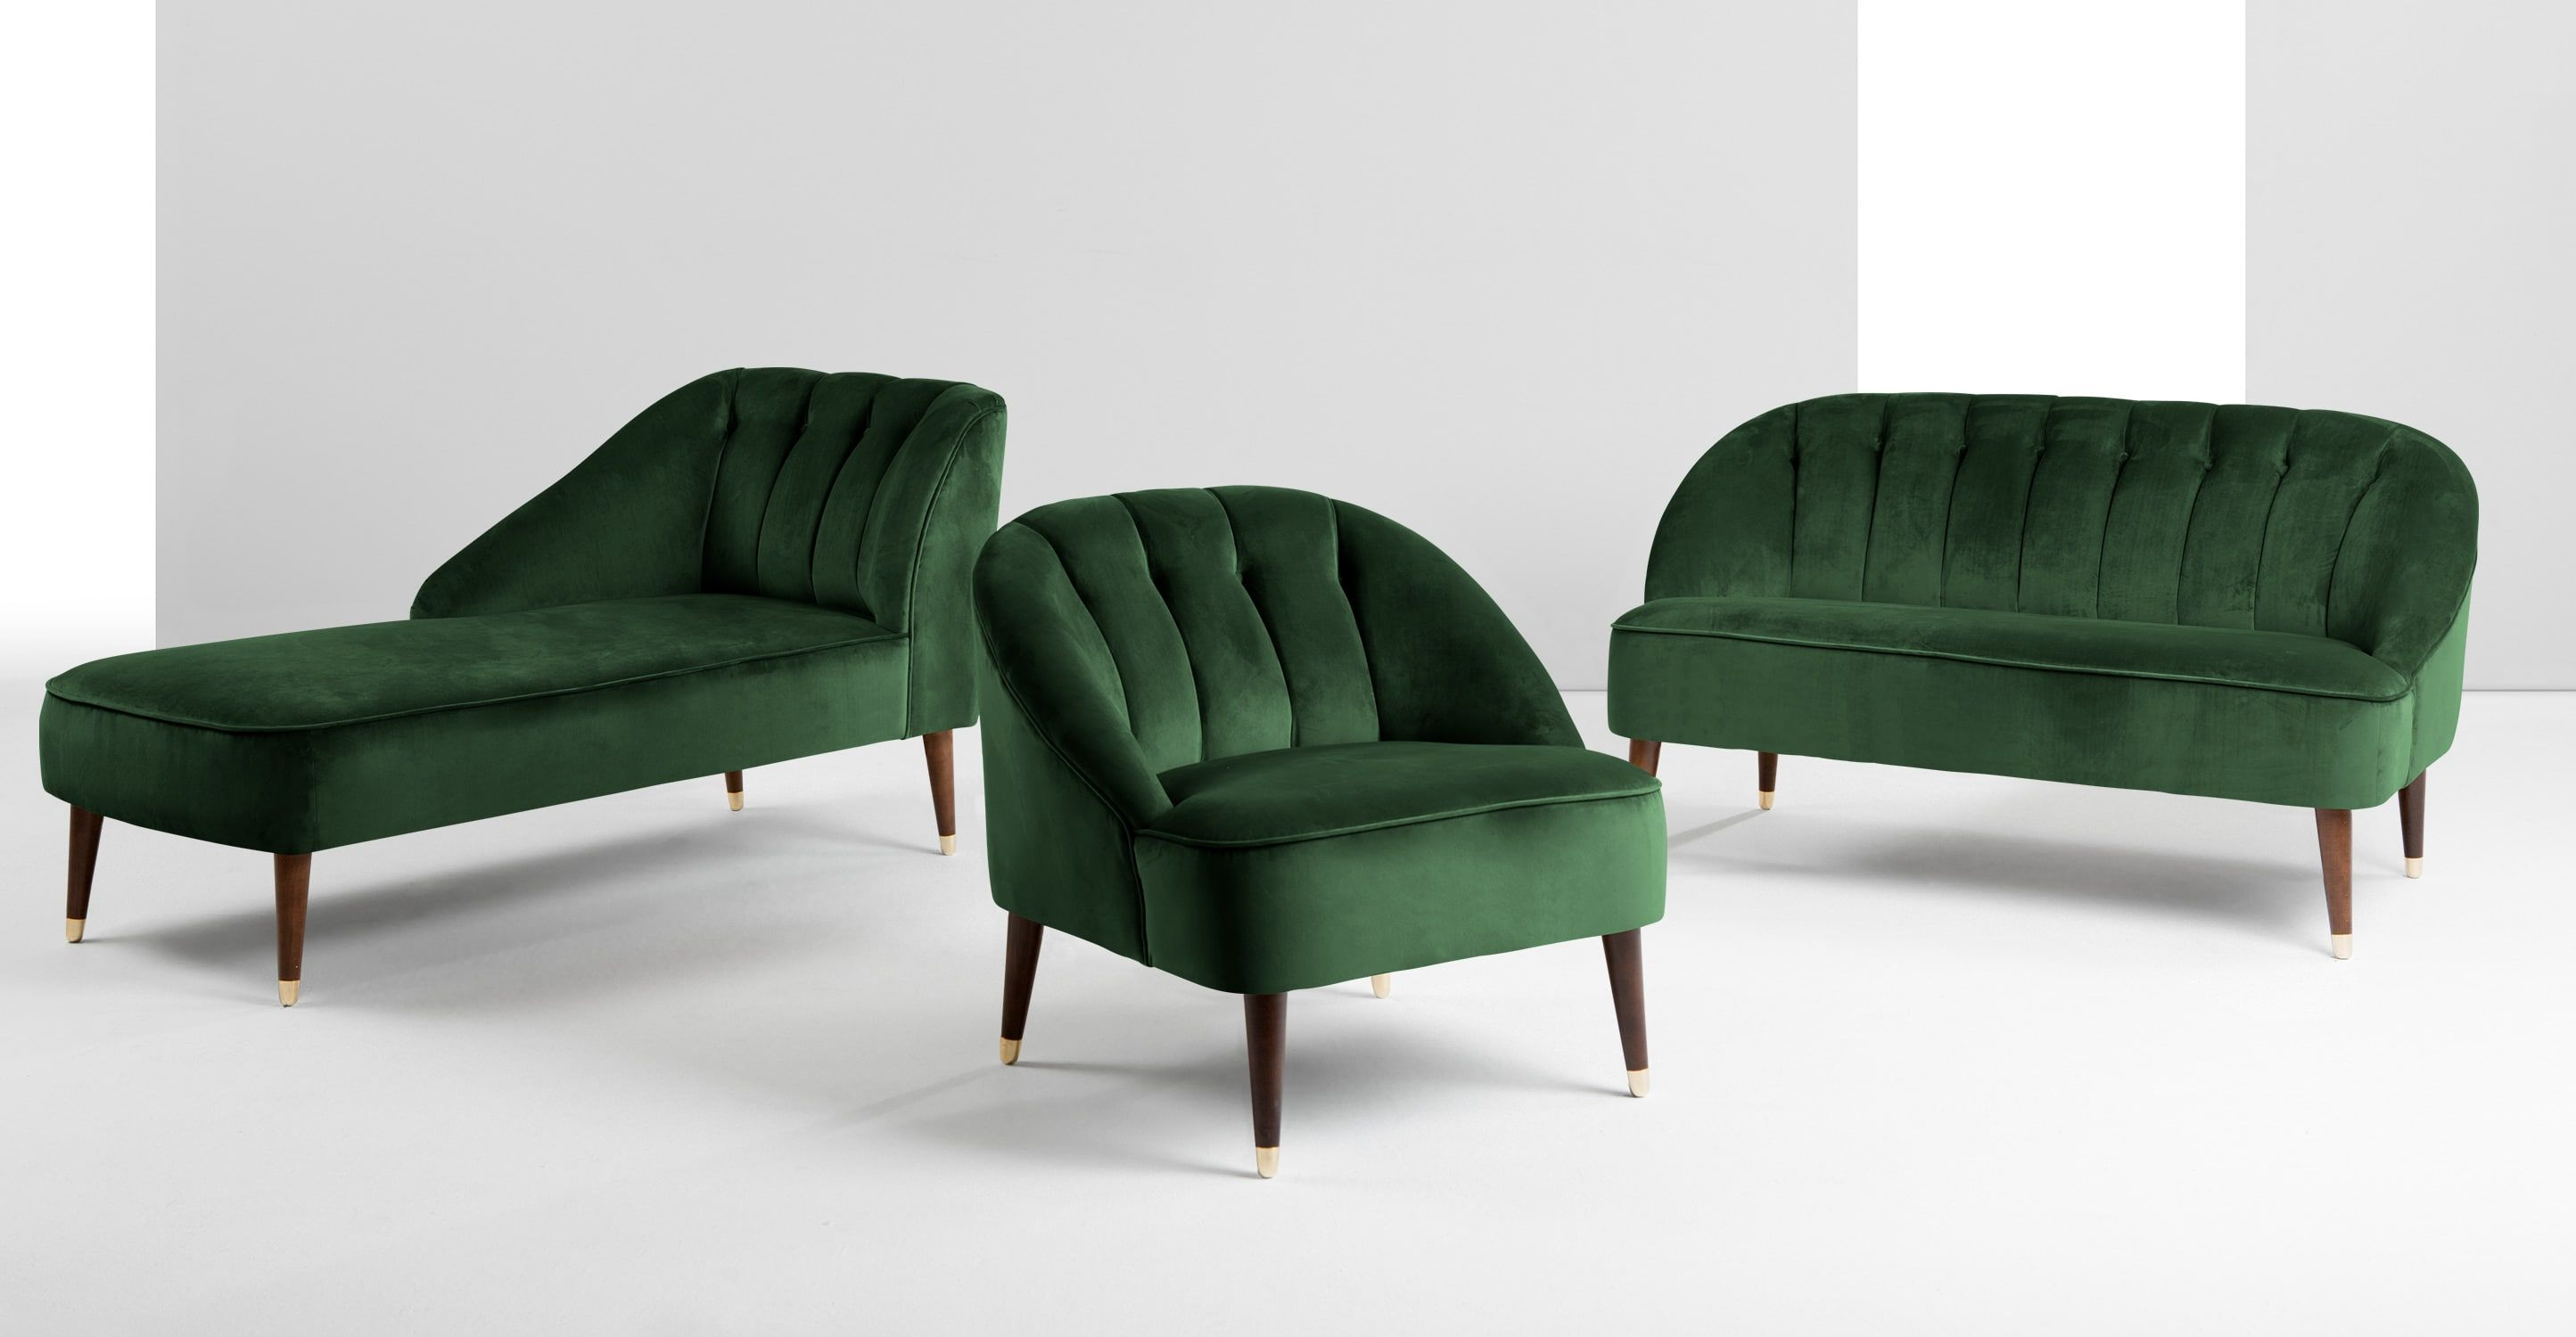 Emerald Green Accent Chair Adorable Images Of Emerald Green Accent Chair Best Home Plans